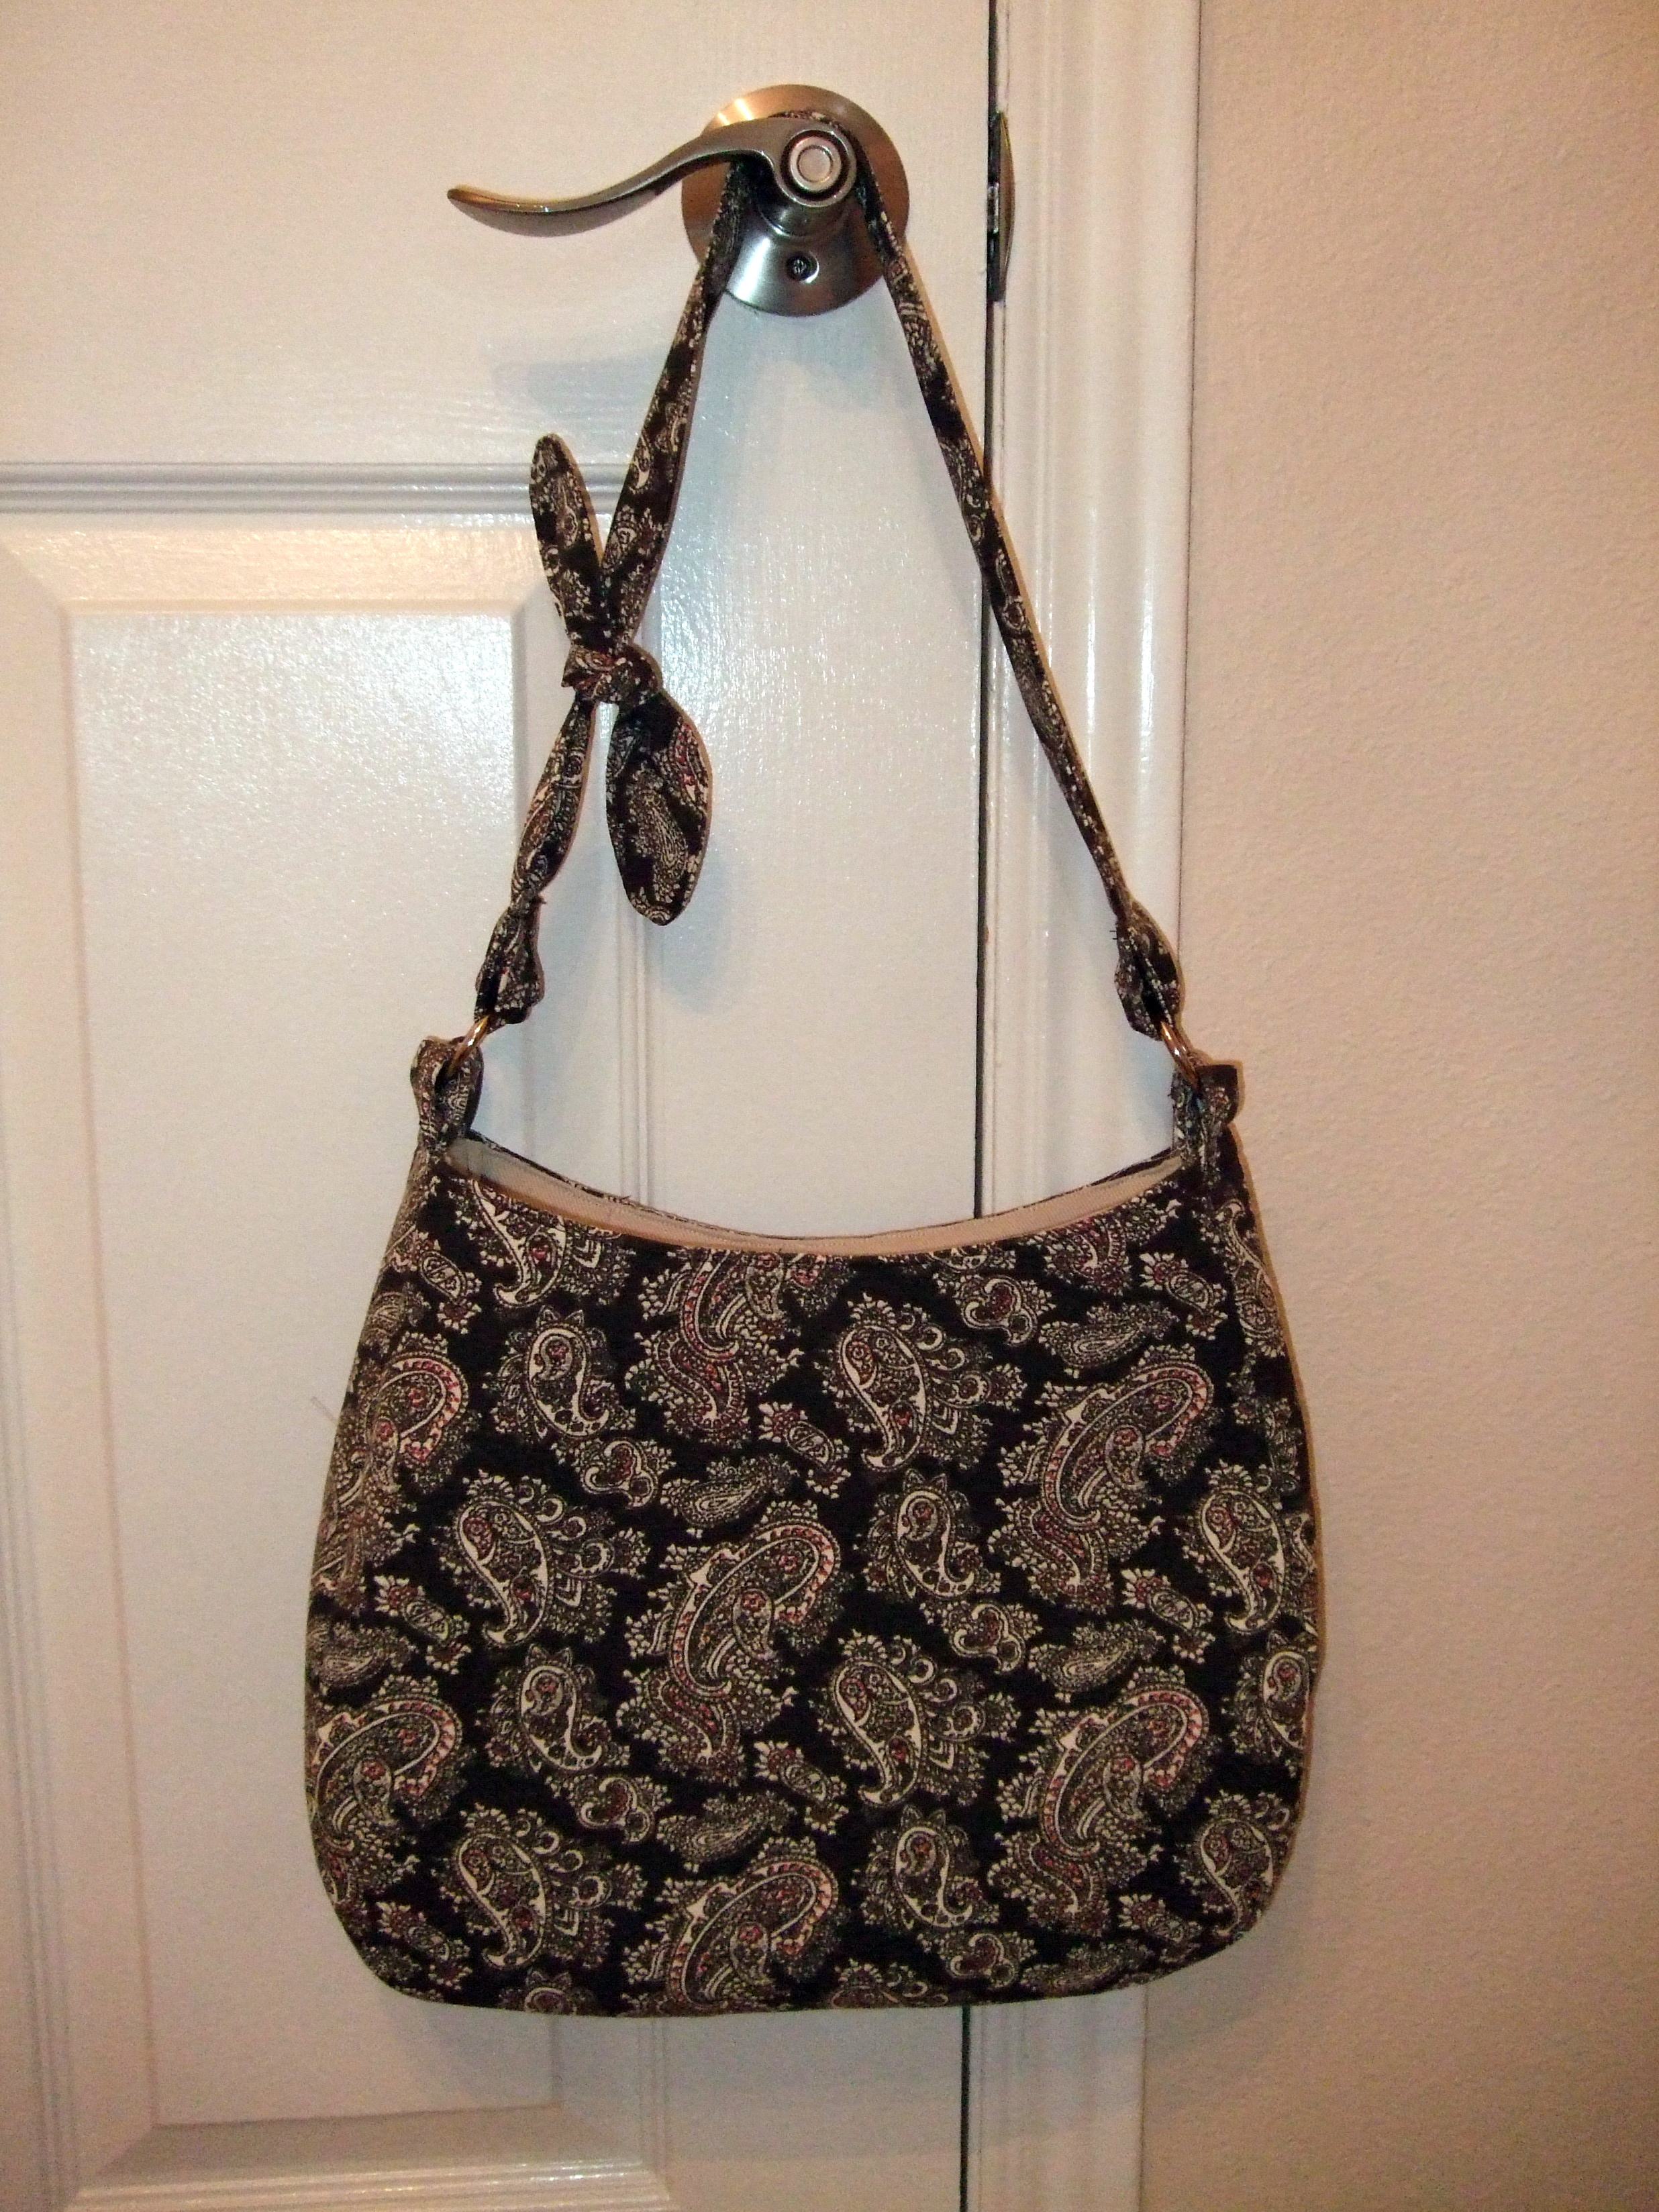 Pursepatterns : Hobo Sling Bag Pattern Hobo bag purse tutorial